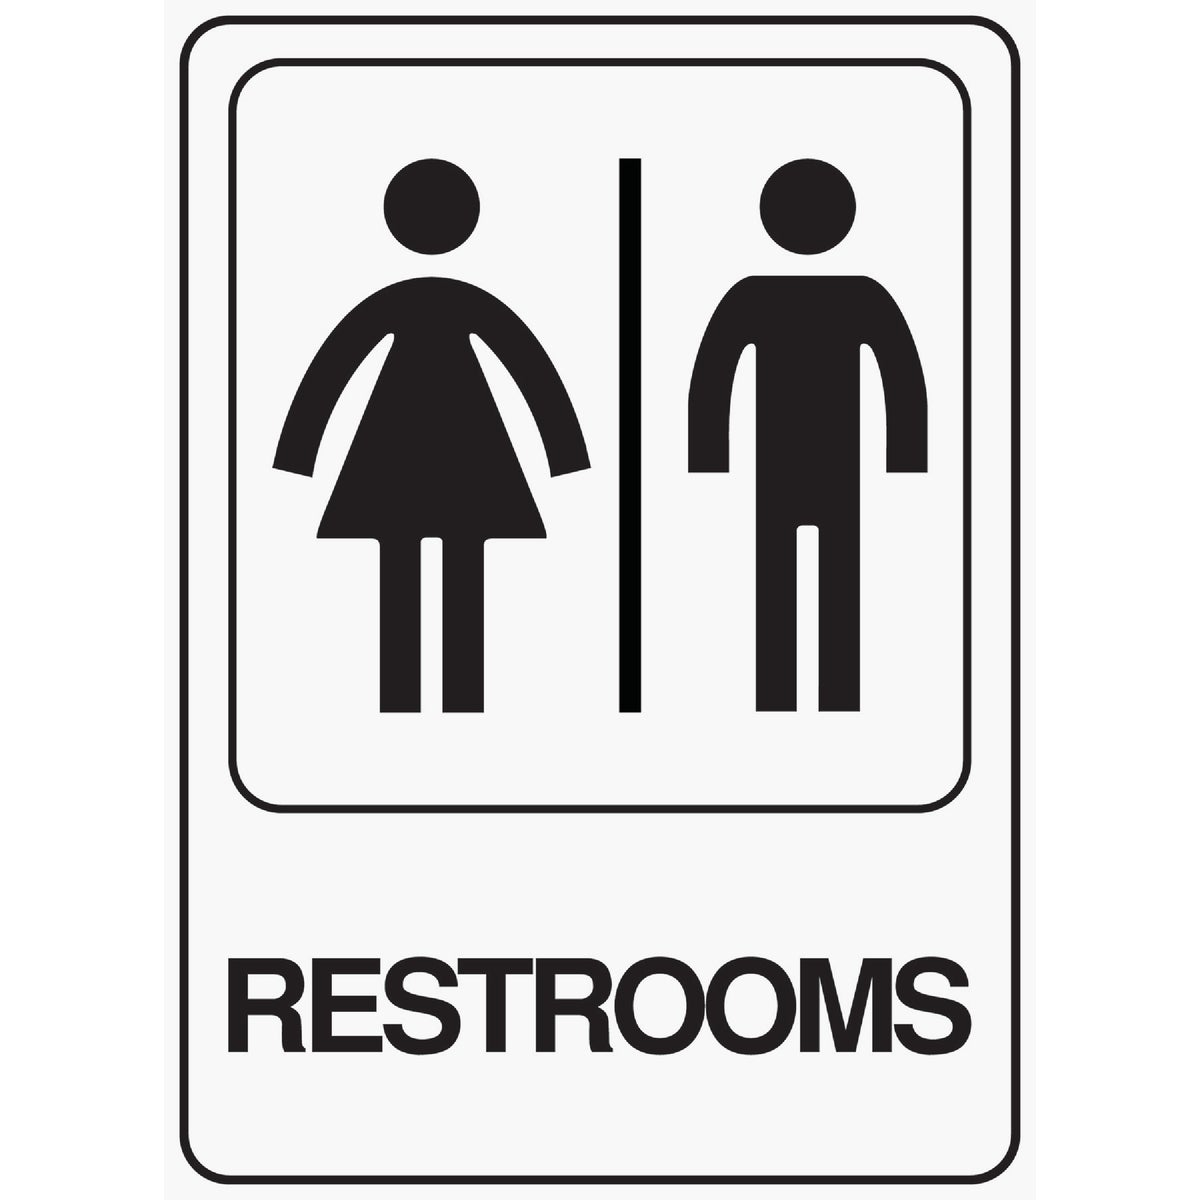 5X7 RESTROOMS SIGN - D-23 by Hy Ko Prods Co